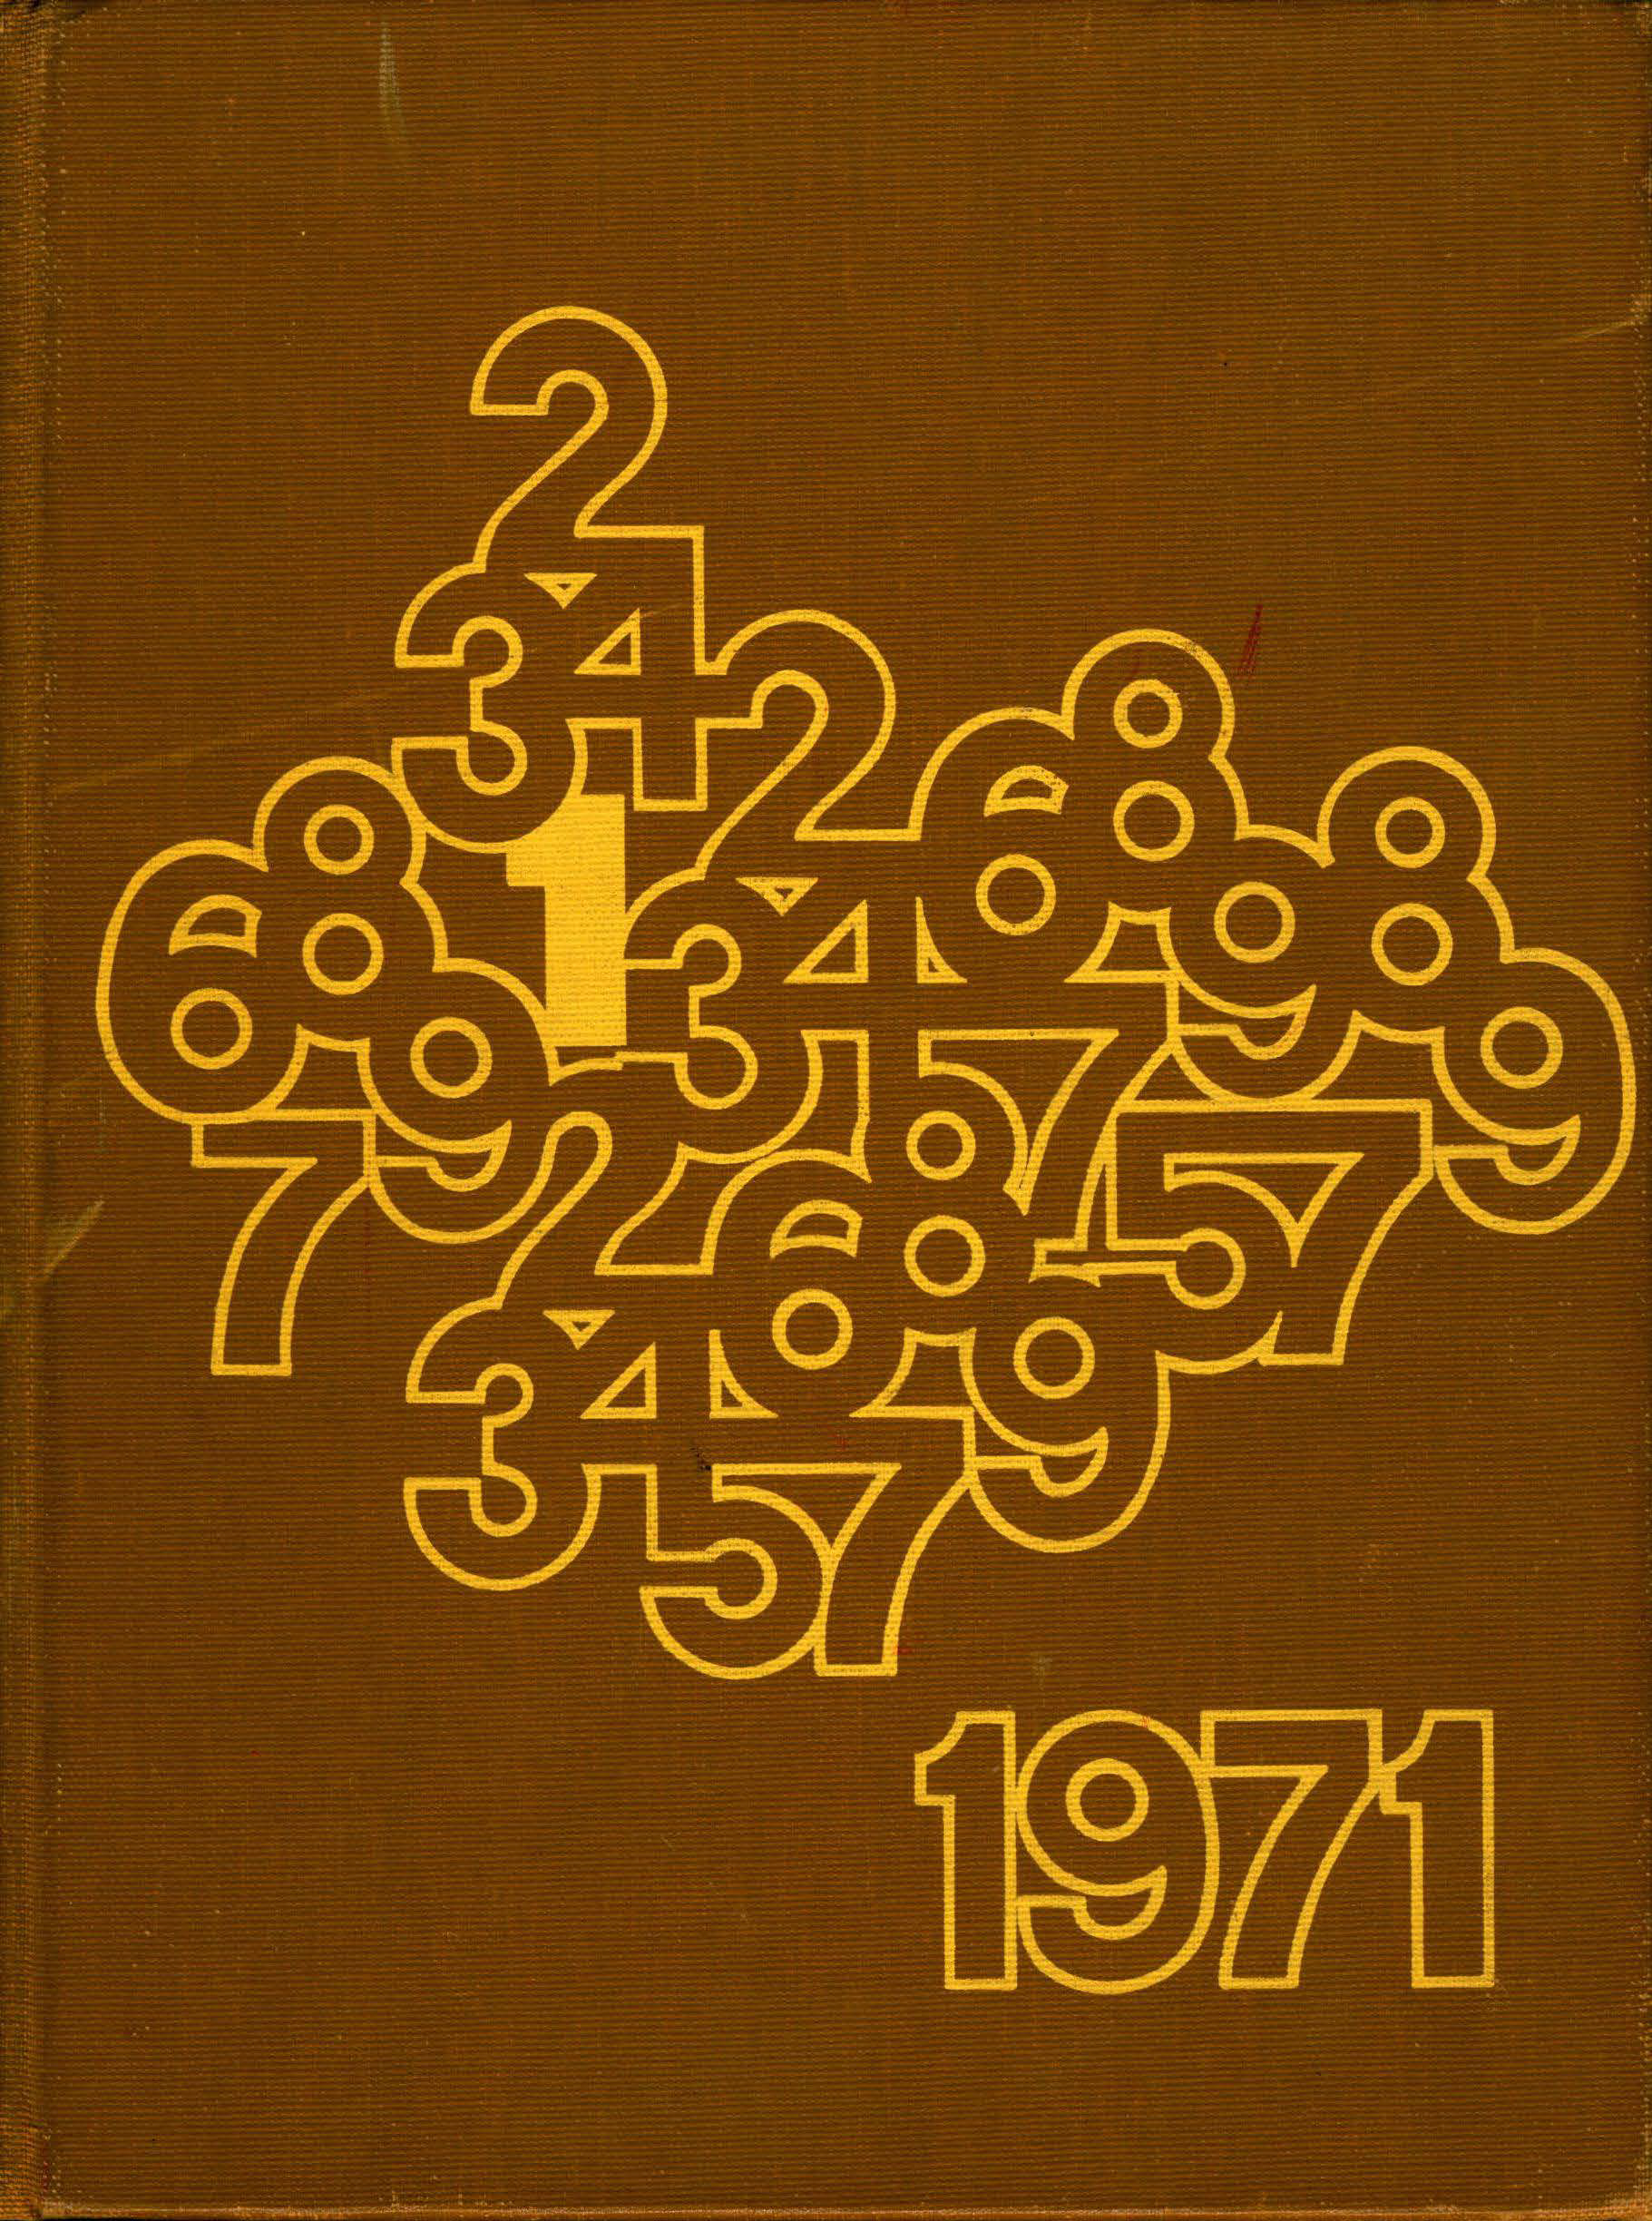 1971 Chelmsford High Yearbook 1